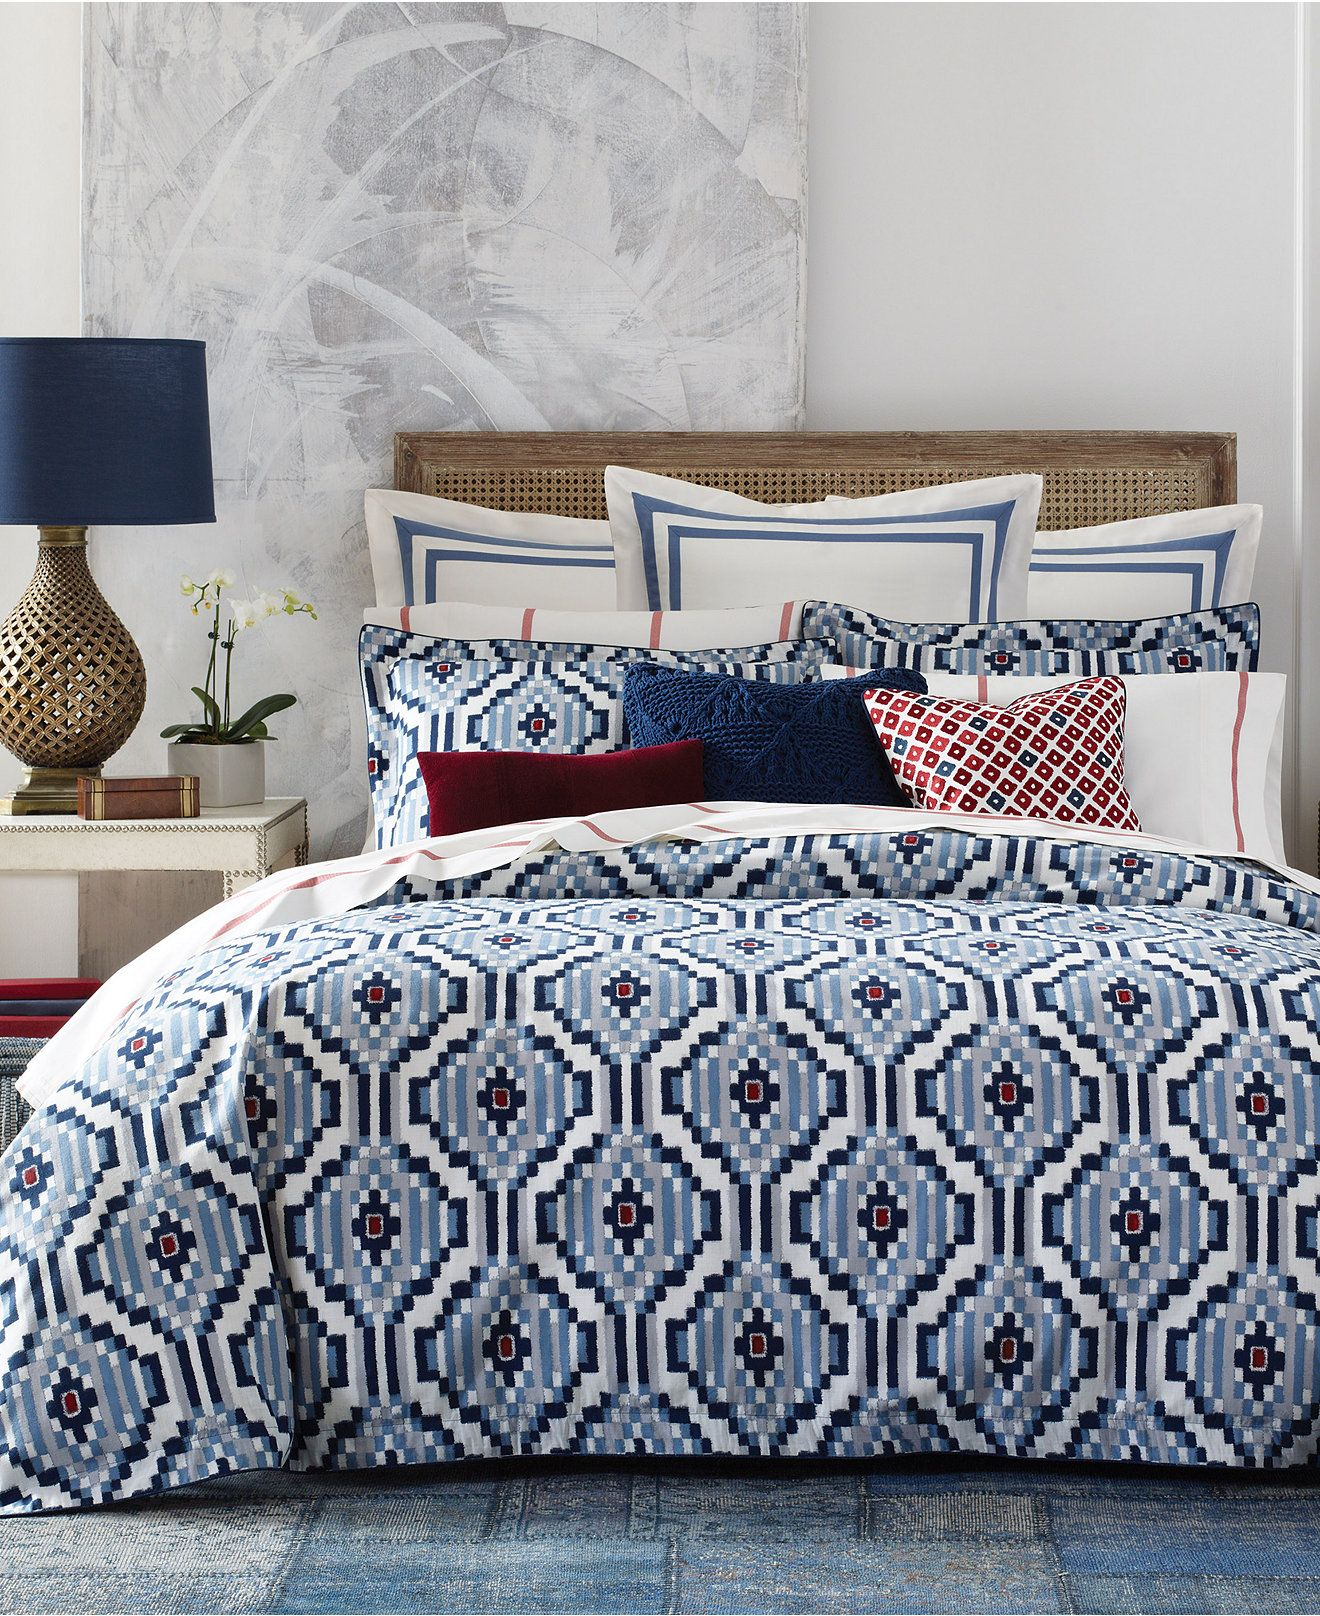 Tommy Hilfiger Home Ellis Island Ikat Bedding Collection